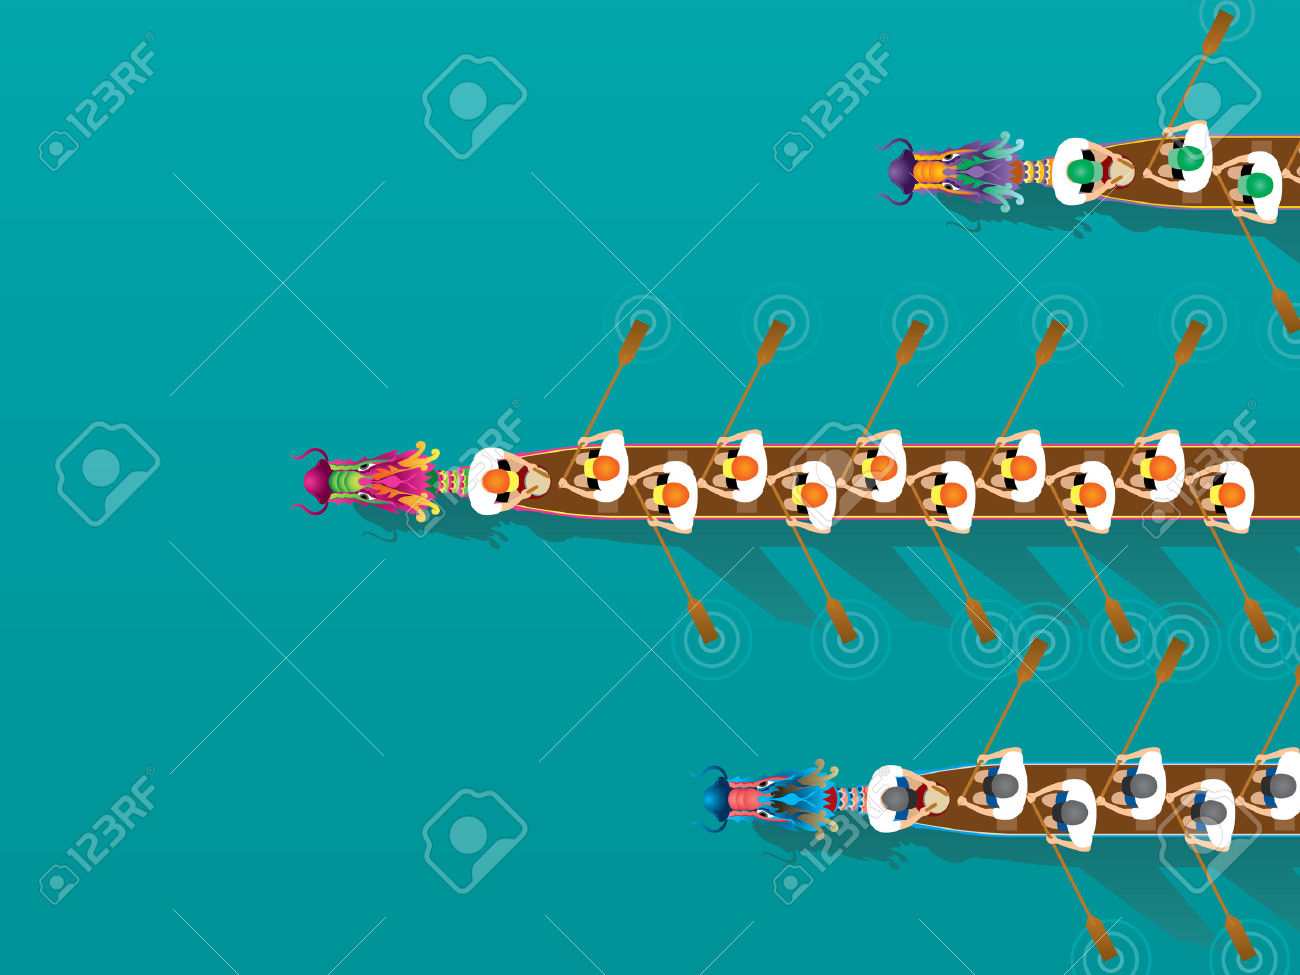 Chinese Dragon Boat Competition Illustration In High Angle View.